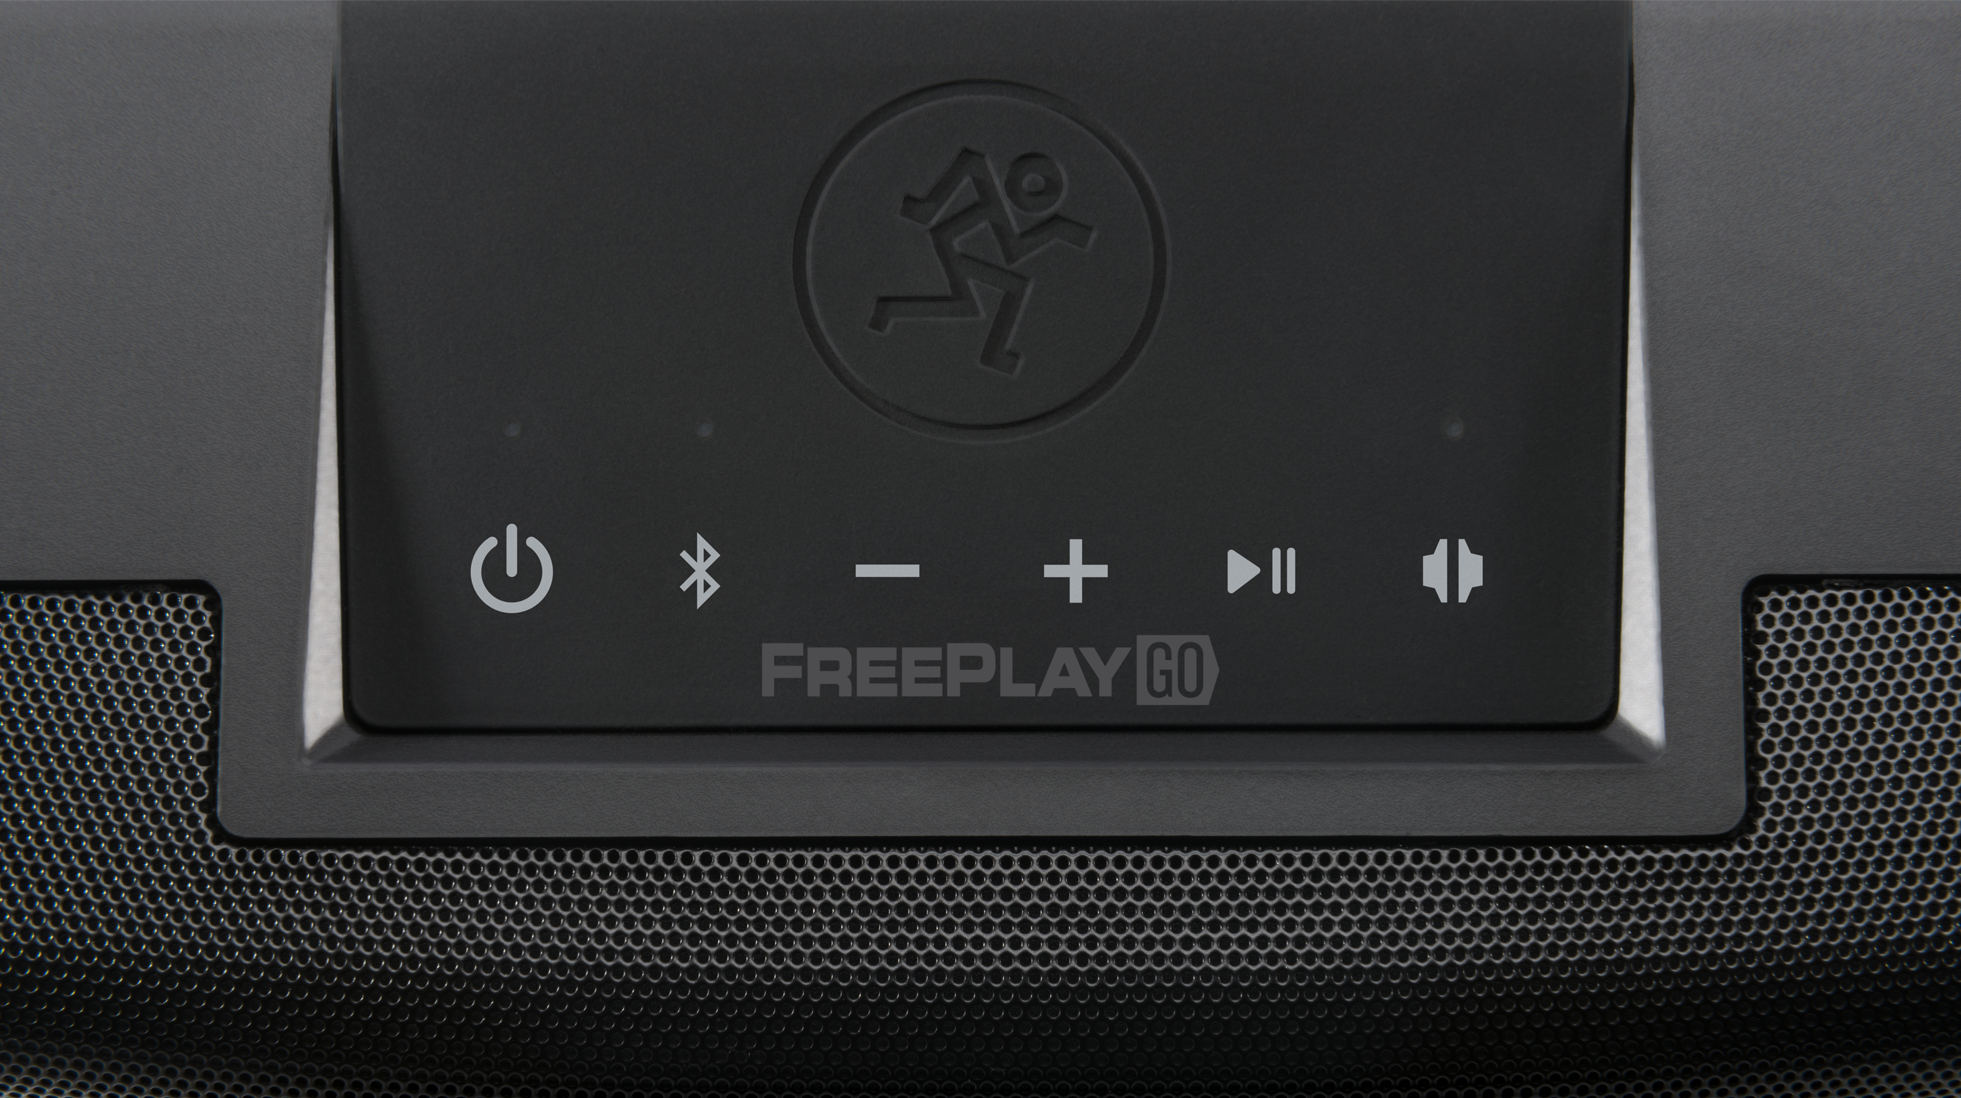 Mackie FreePlay GoUltra-Compact Portable Bluetooth Speaker - Close up